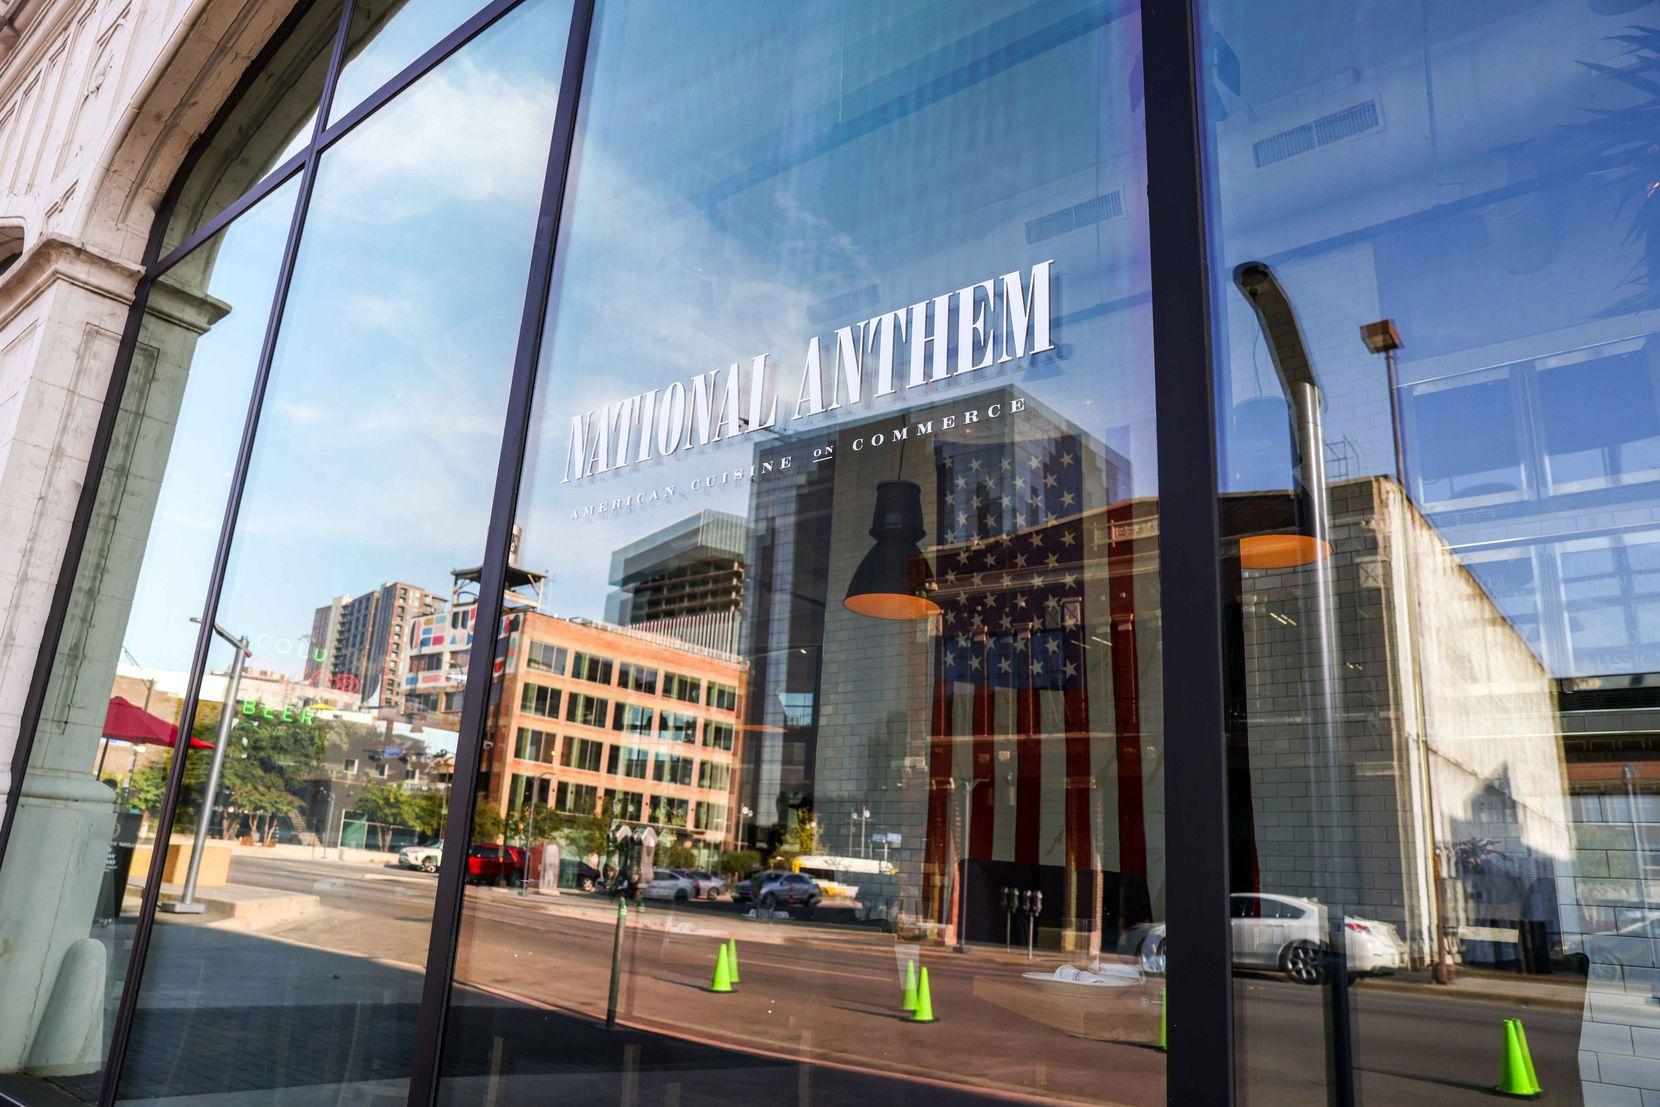 The historic building where National Anthem is once sat in the middle of Automobile Row in downtown Dallas. Now it's in the heart of the East Quarter, an area Todd Interests has been revitalizing since 2018.